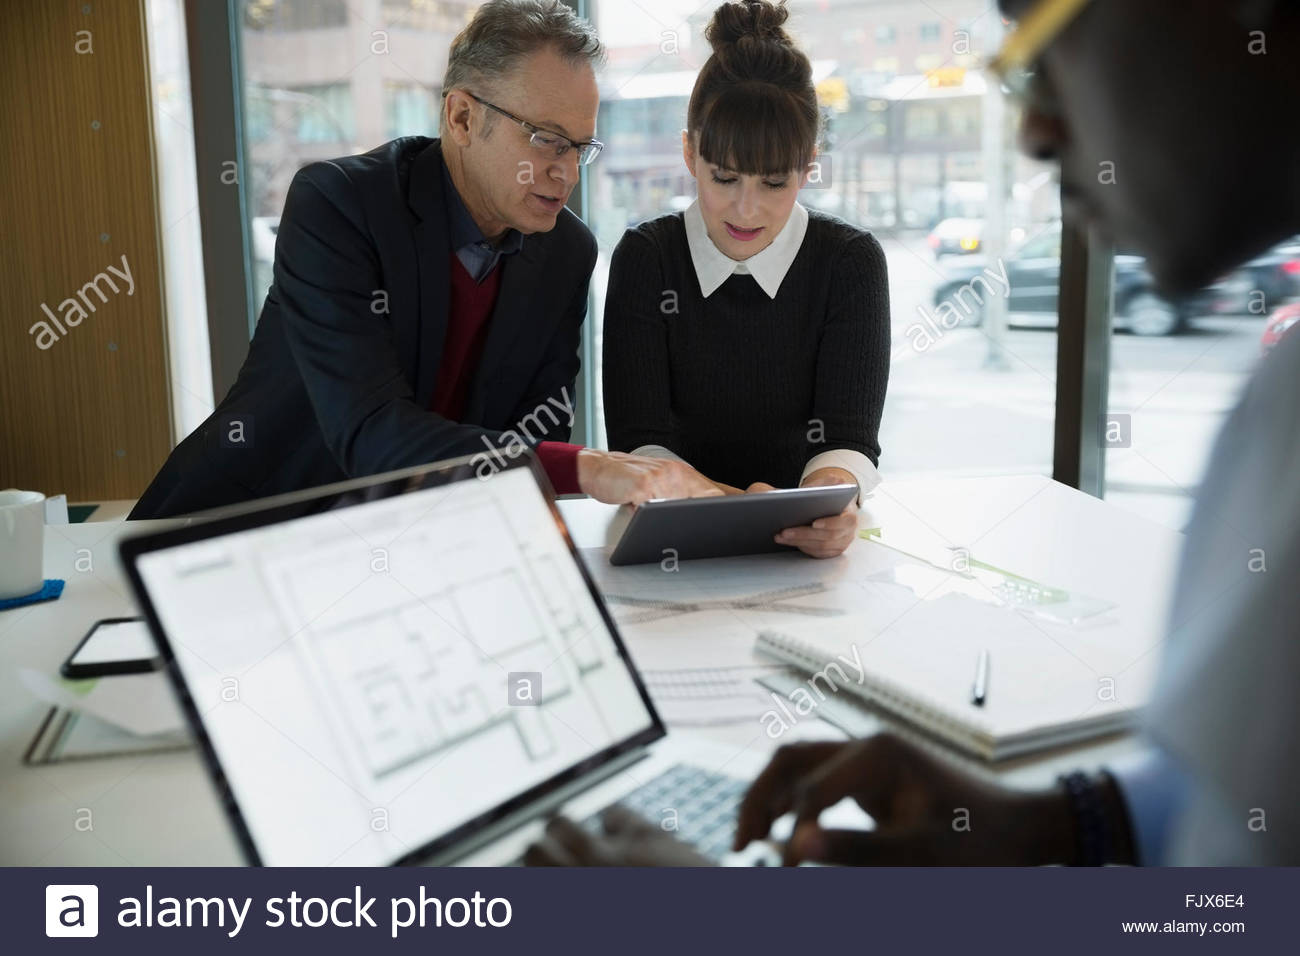 Architects using technology in urban office - Stock Image